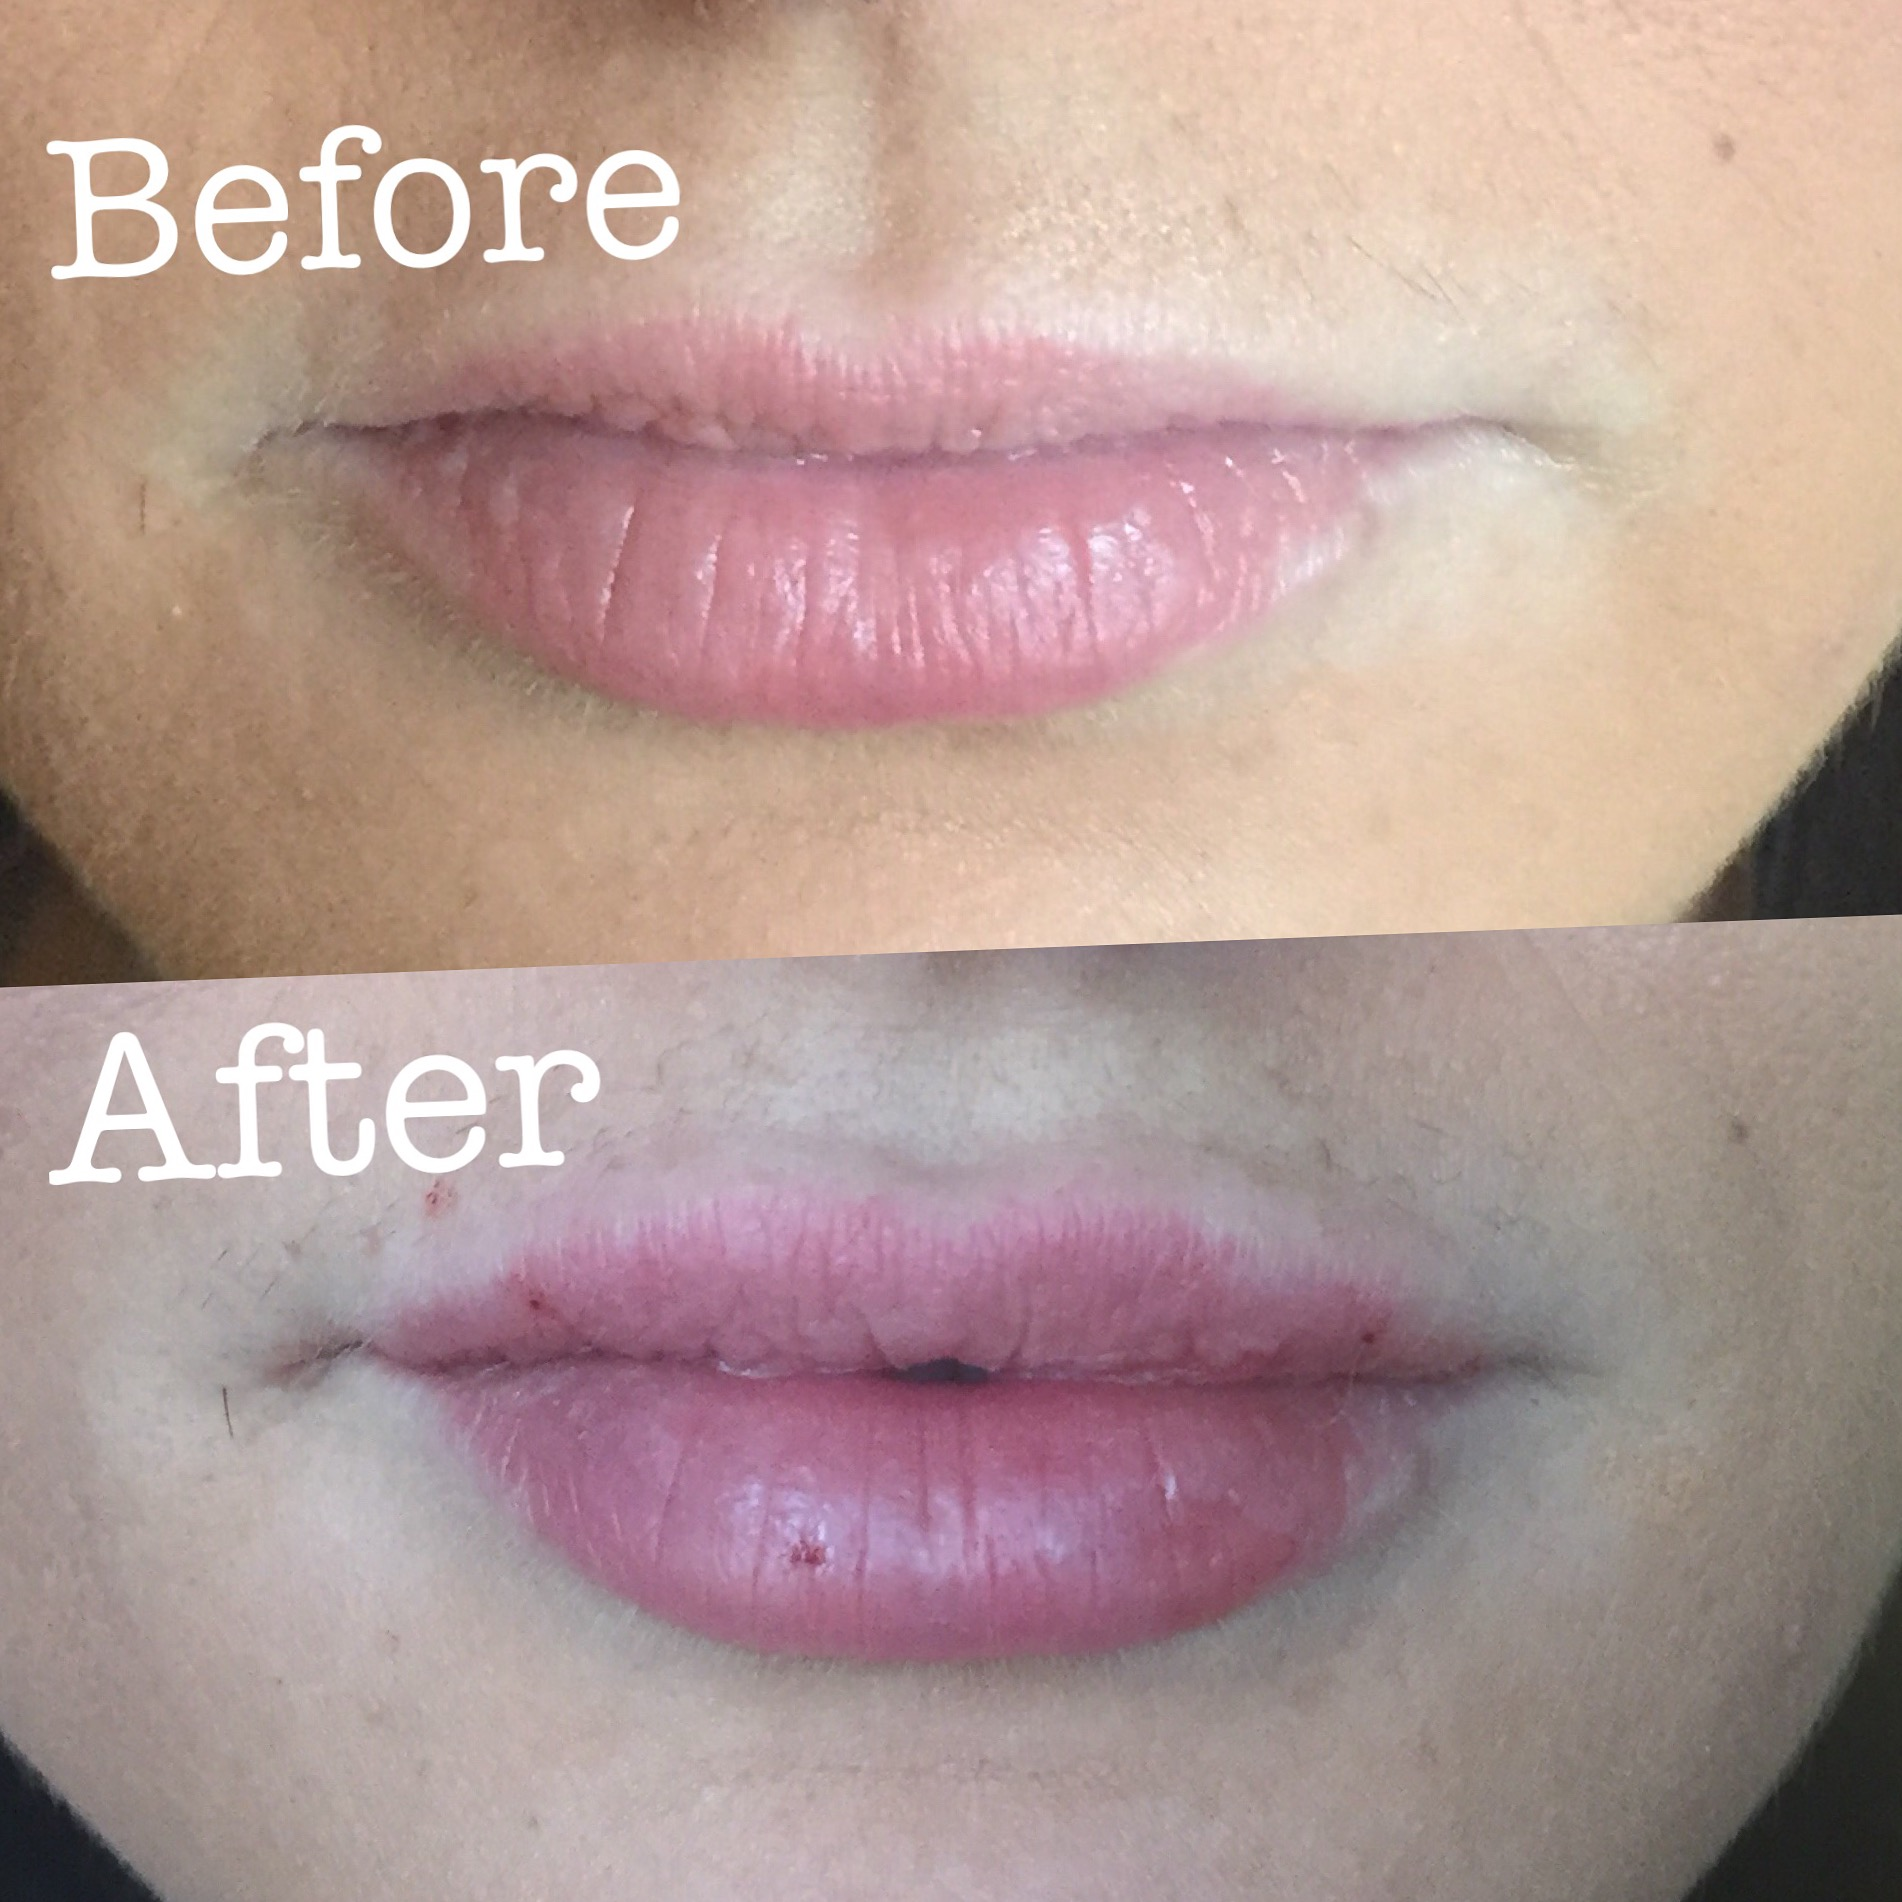 Before and after Lip Injections!